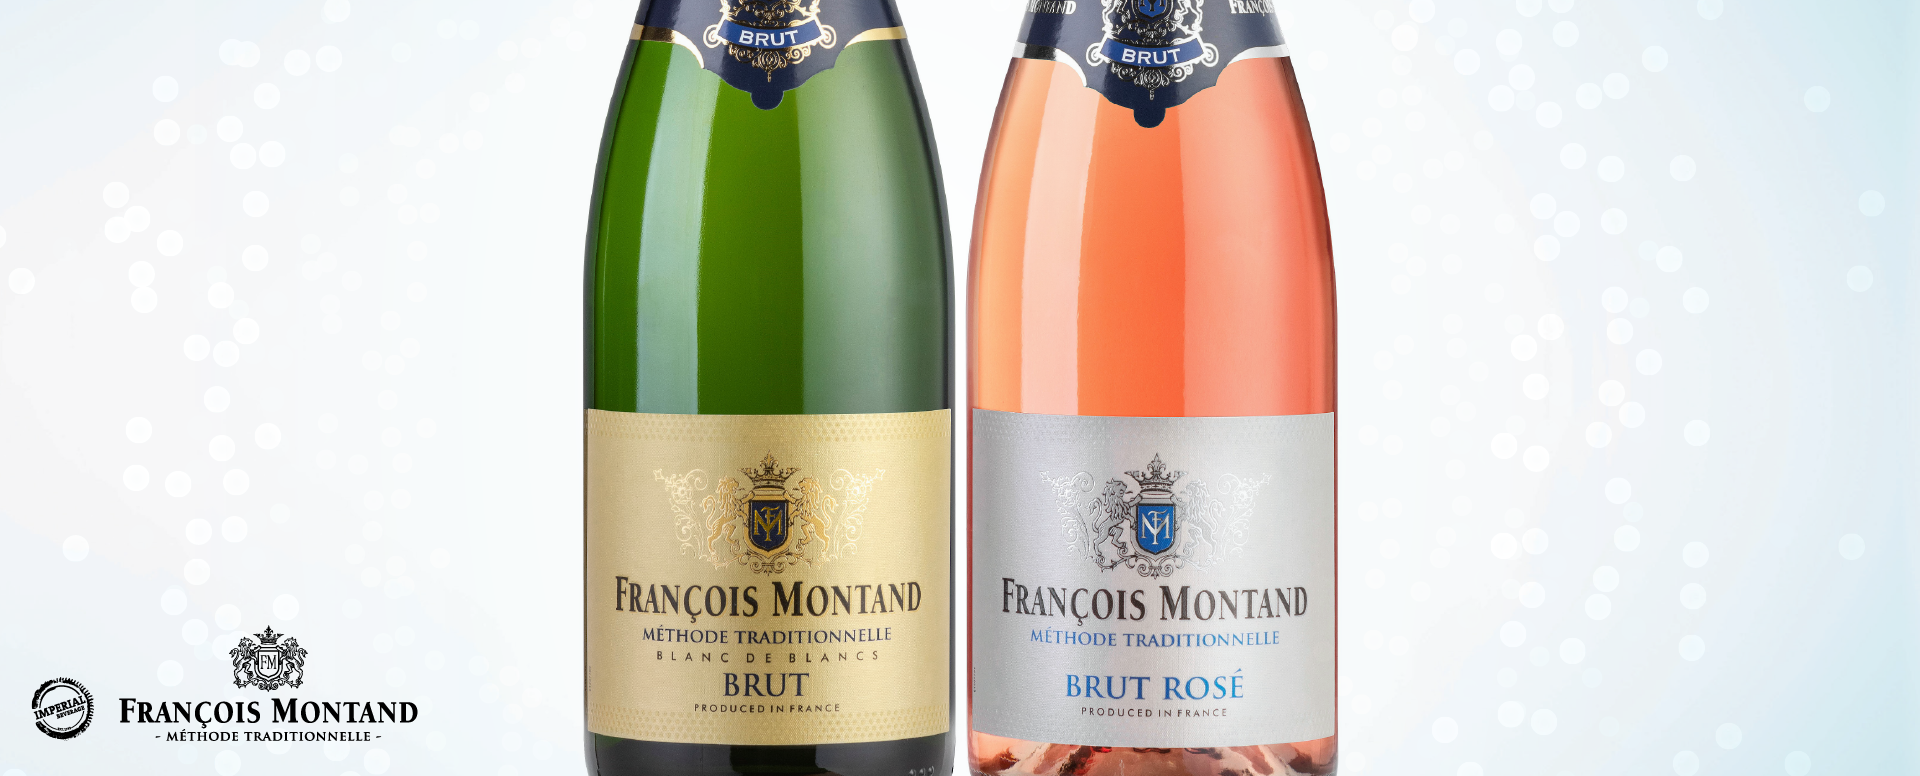 Imperial Beverage Francois Montand